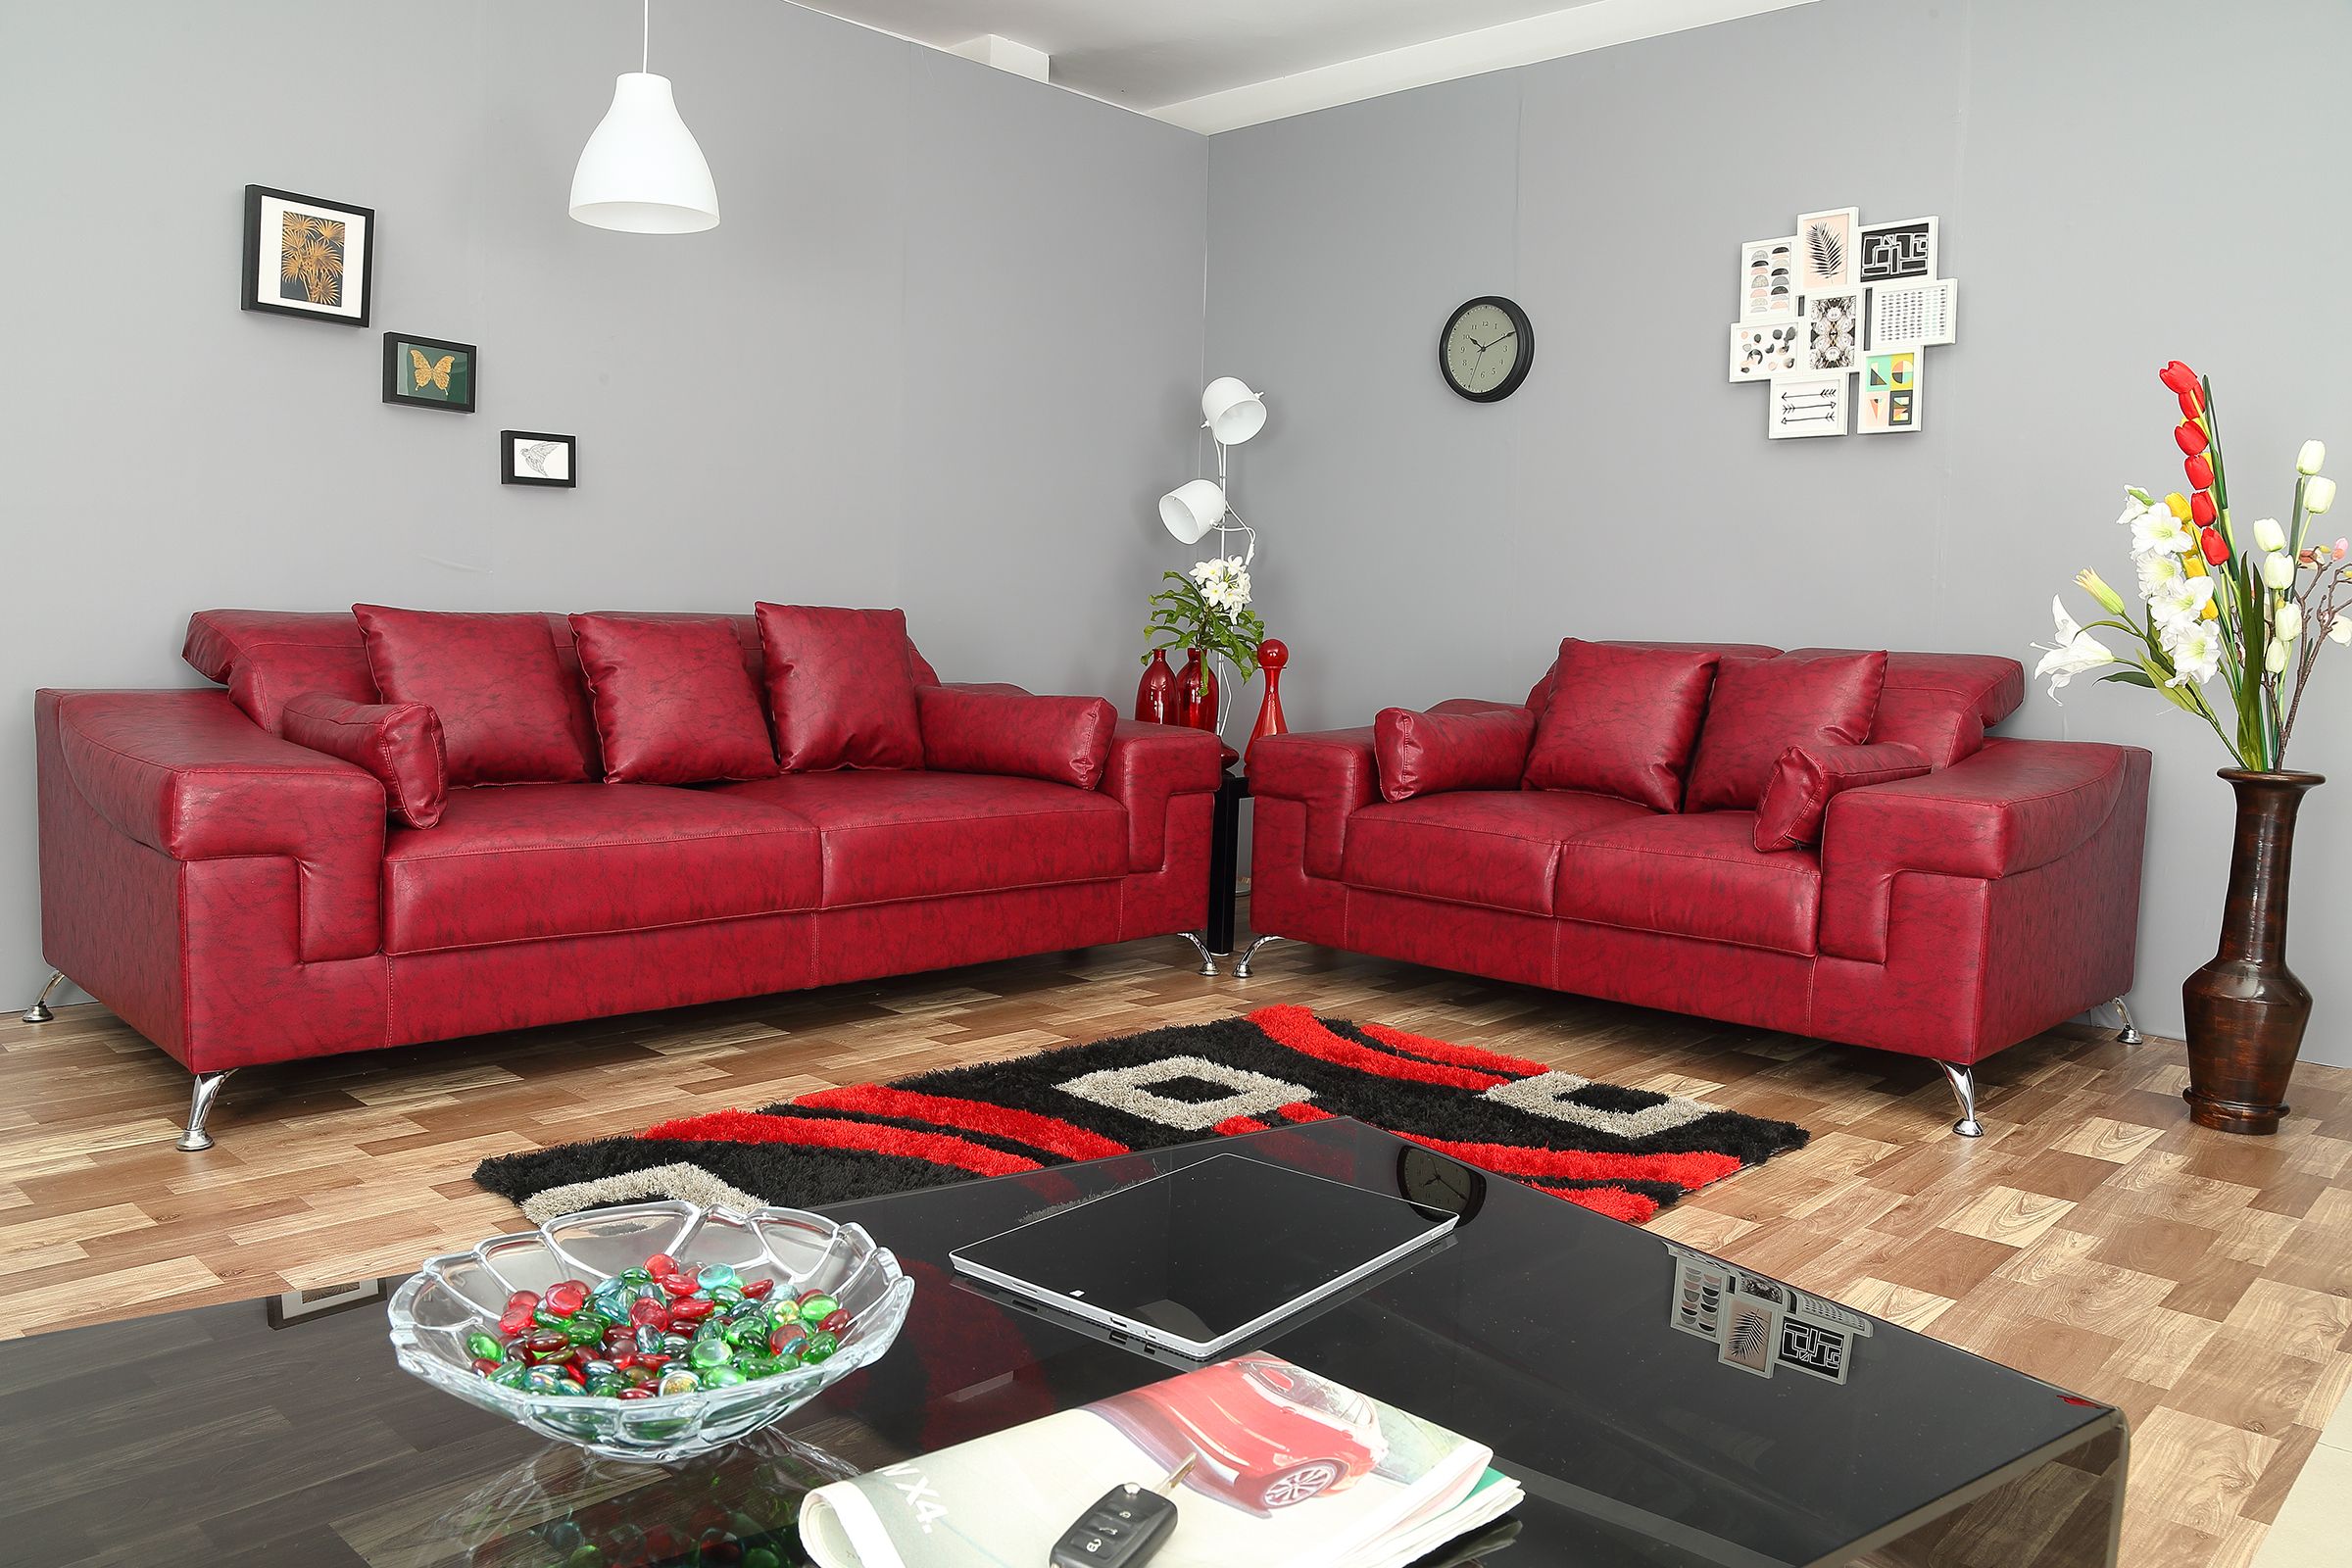 Surprising Austin 3 2 Seater Sofa Set Cowboy Sofas Inzonedesignstudio Interior Chair Design Inzonedesignstudiocom